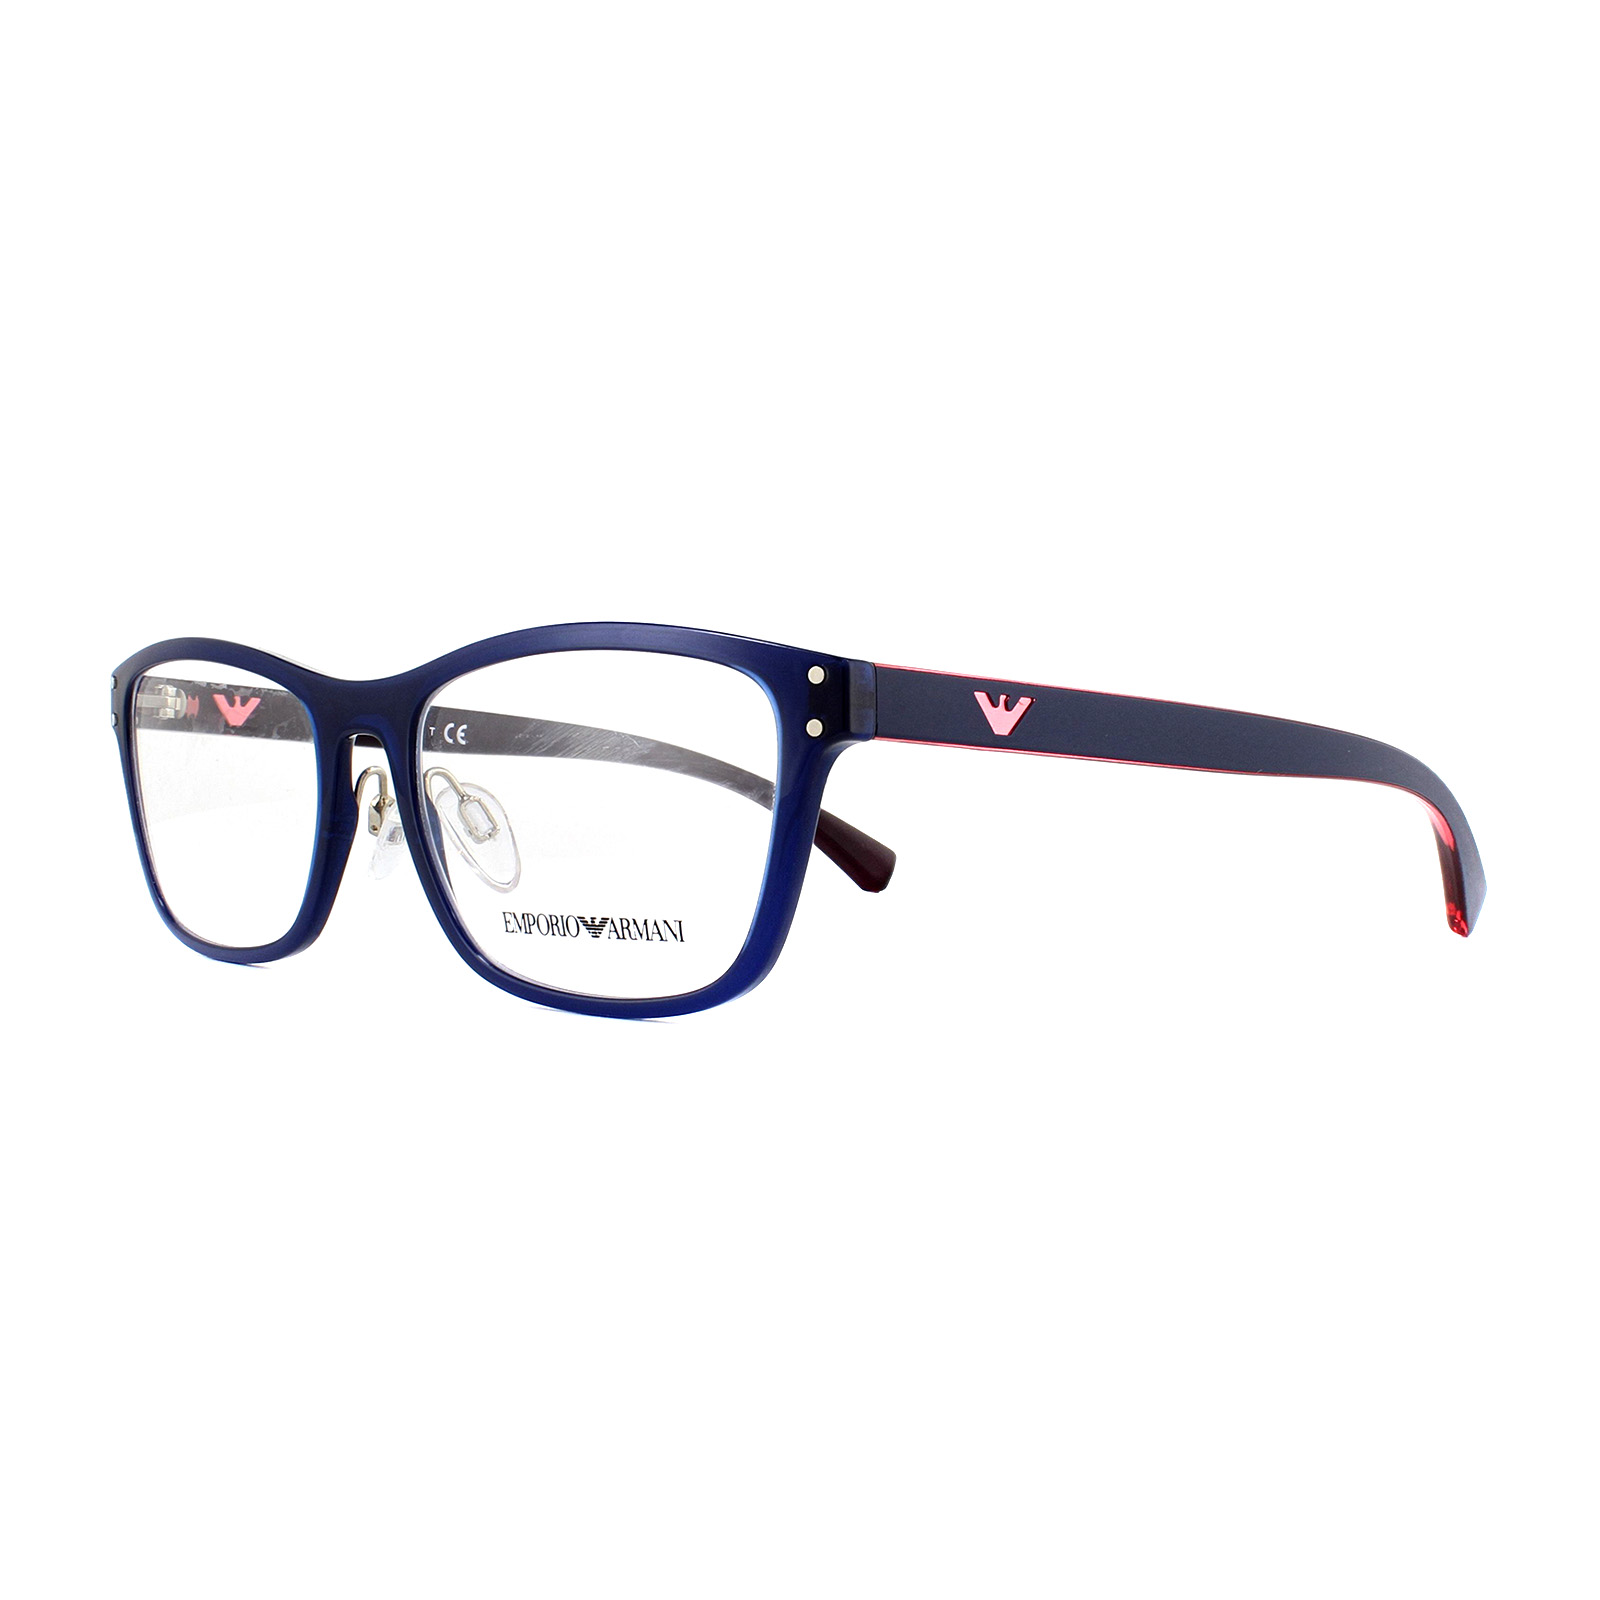 61c7ef743e Sentinel Emporio Armani Glasses Frames EA 3113 5563 Transparrent Blue 52mm  Womens